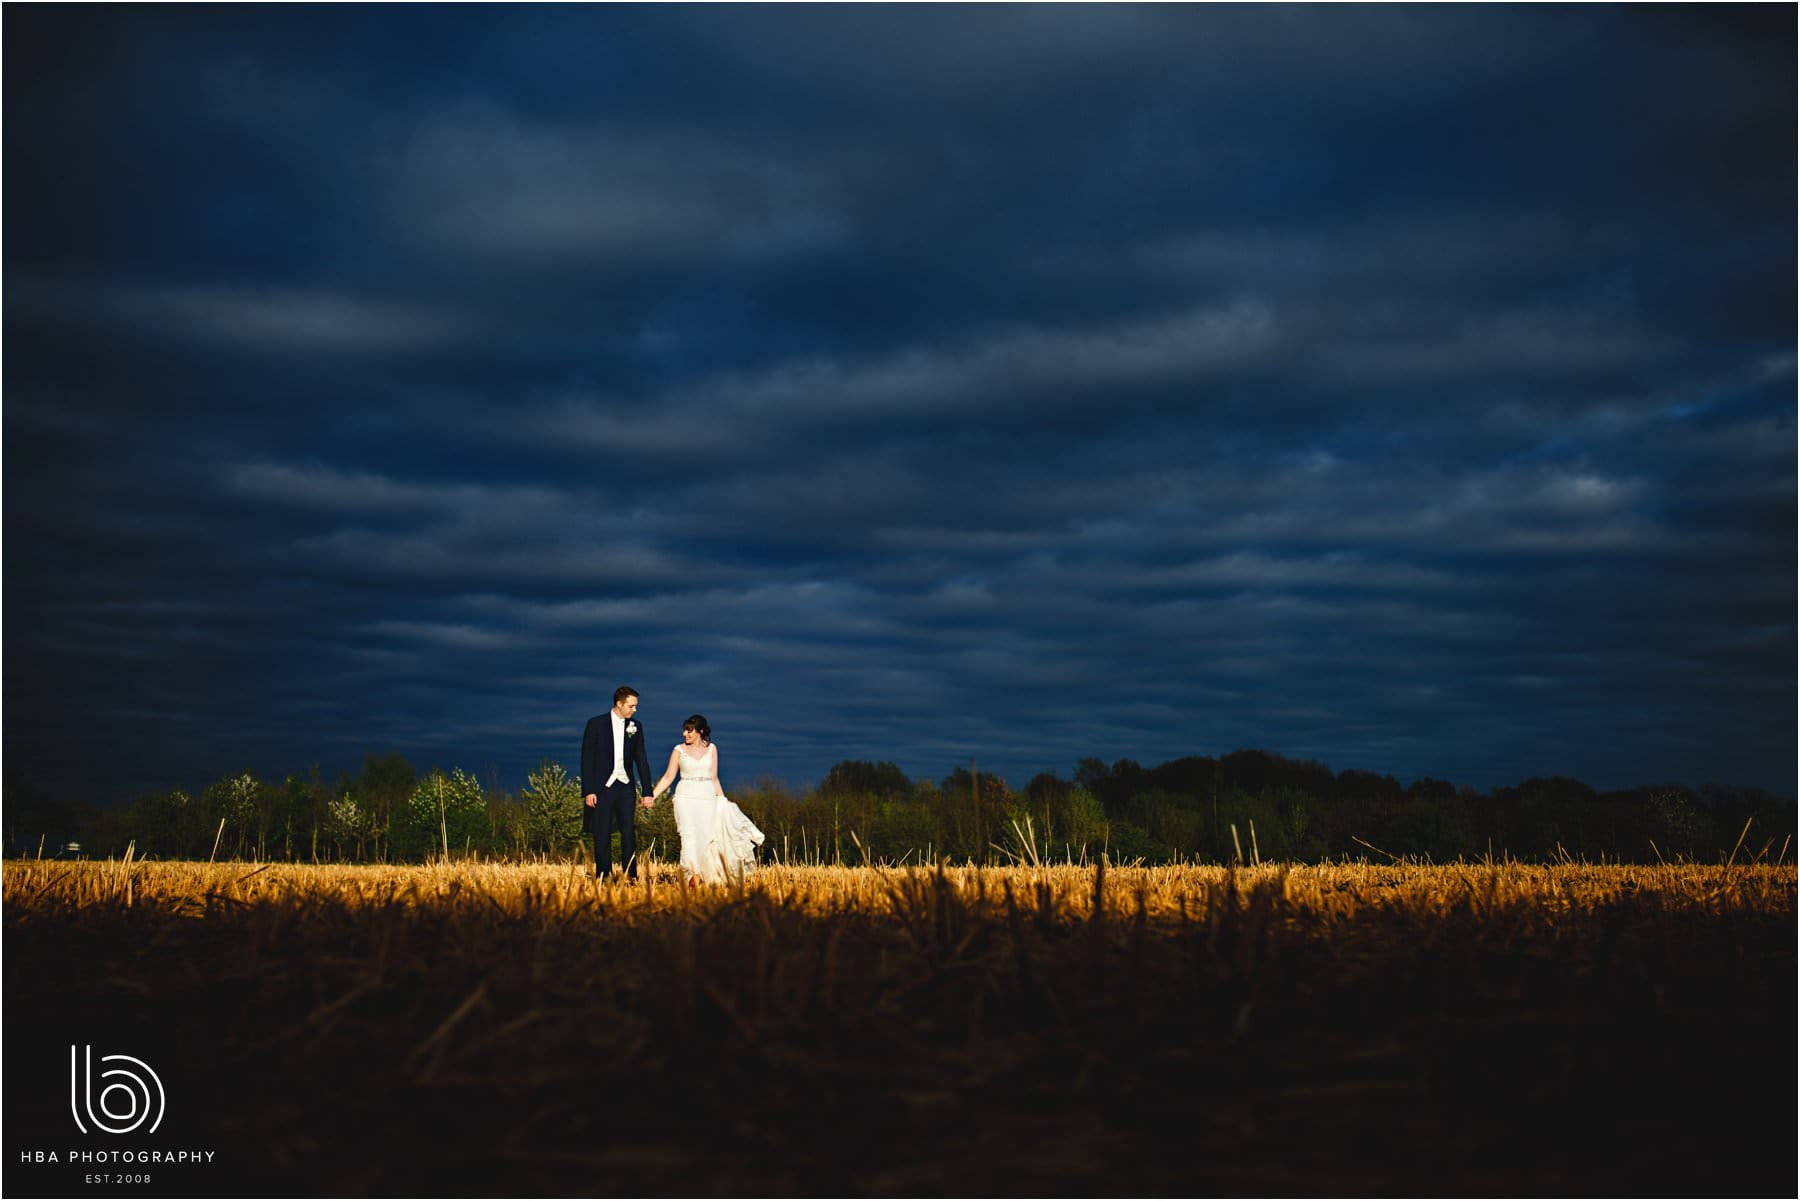 the bride and groom in stormy skies